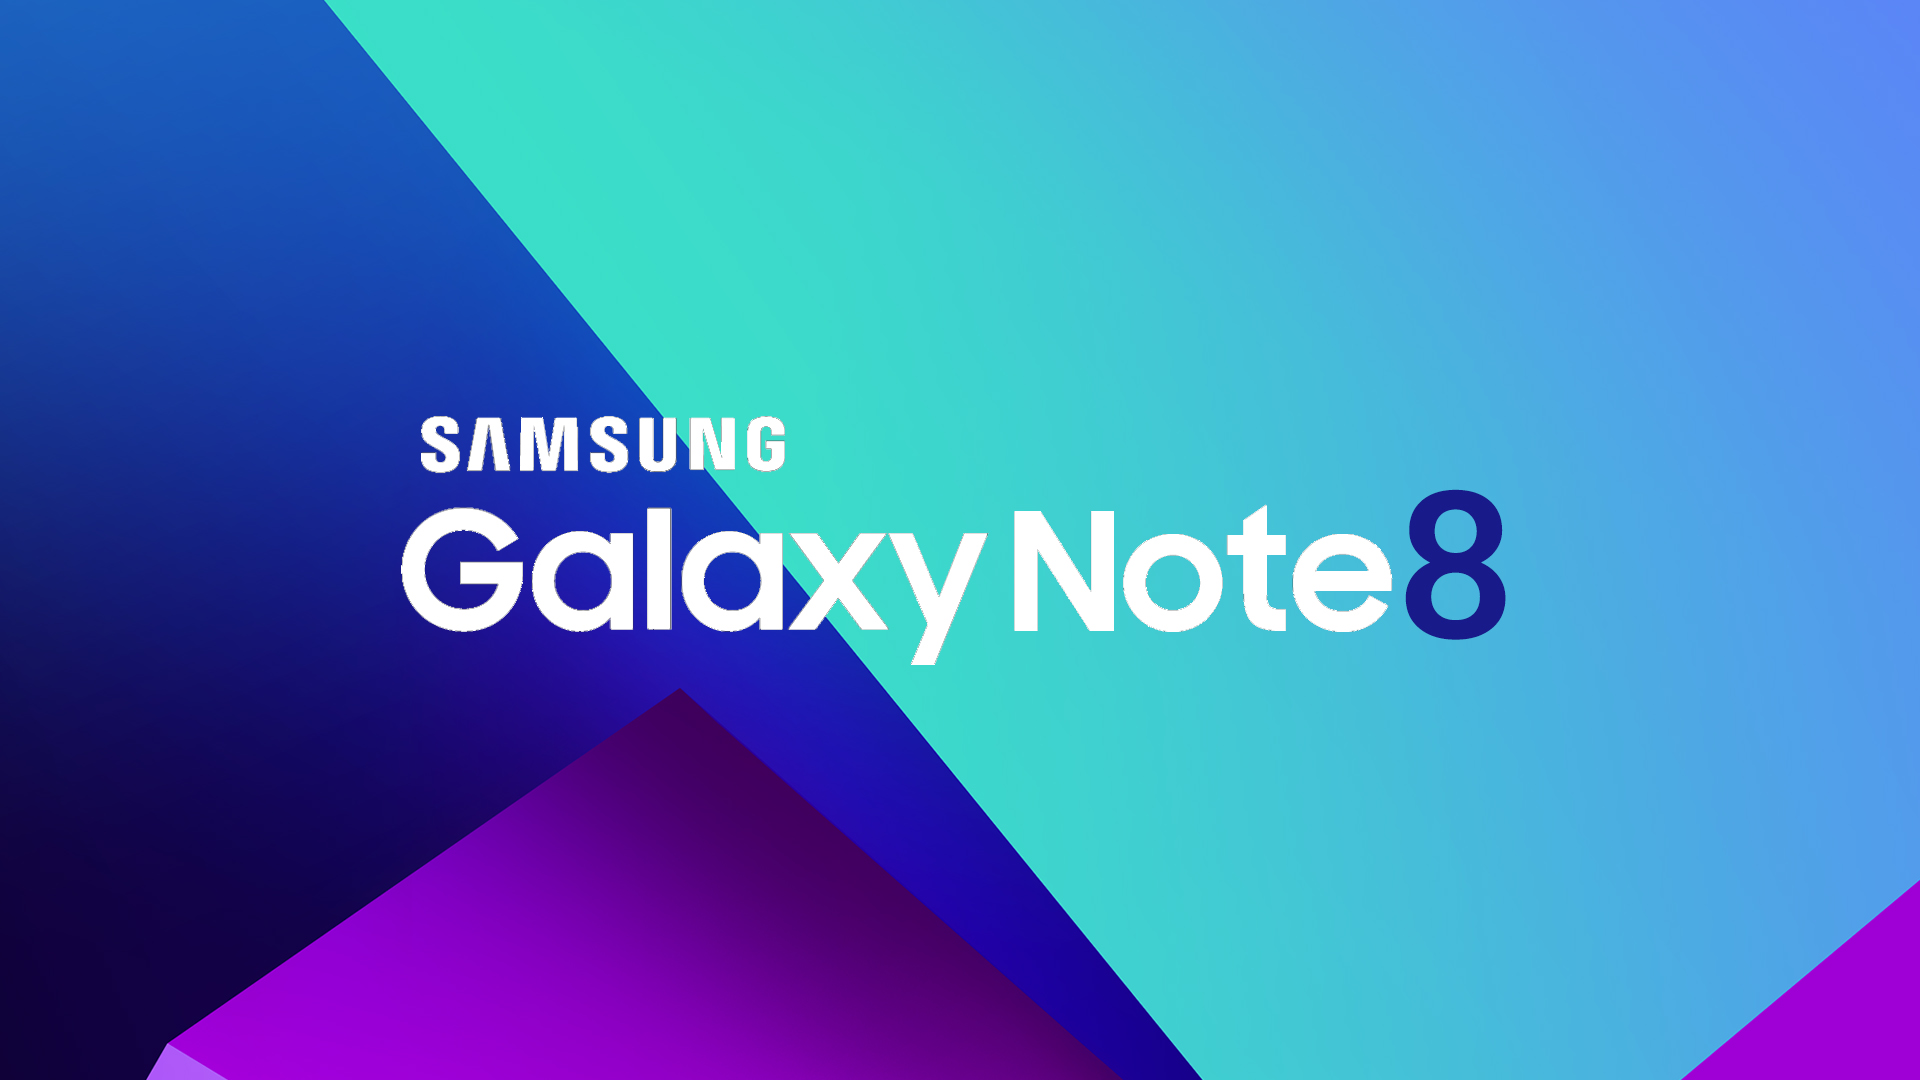 galaxy note 8 Samsung